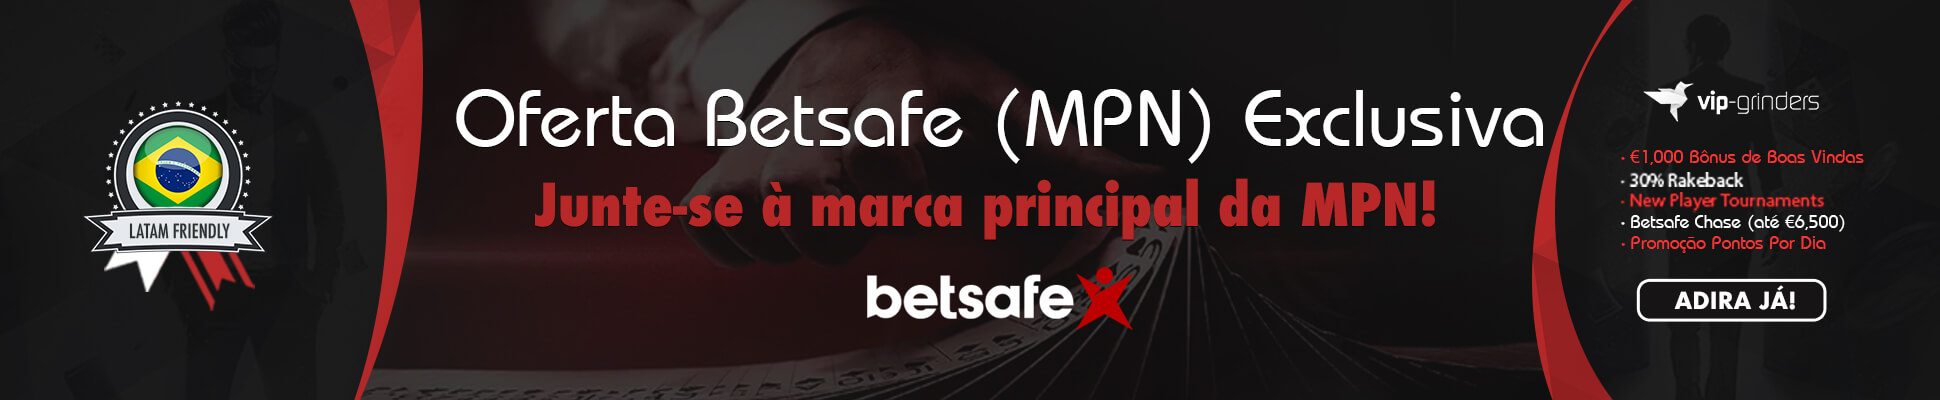 Betsafe-main-slider-created-mAY